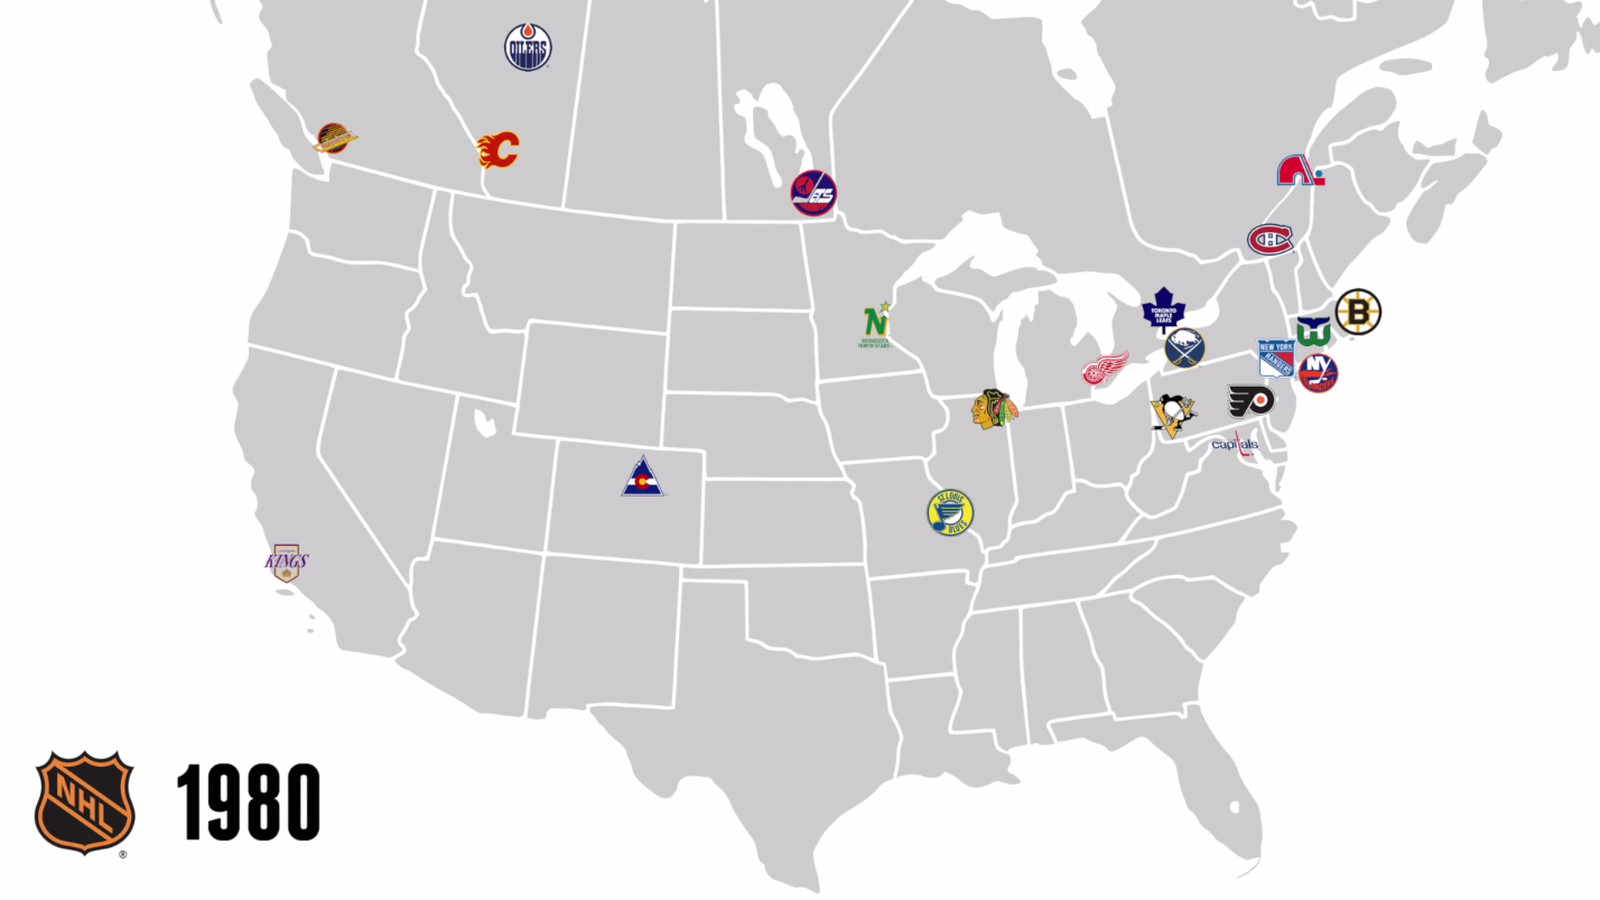 97 years of NHL expansion in one simple map - SBNation.com